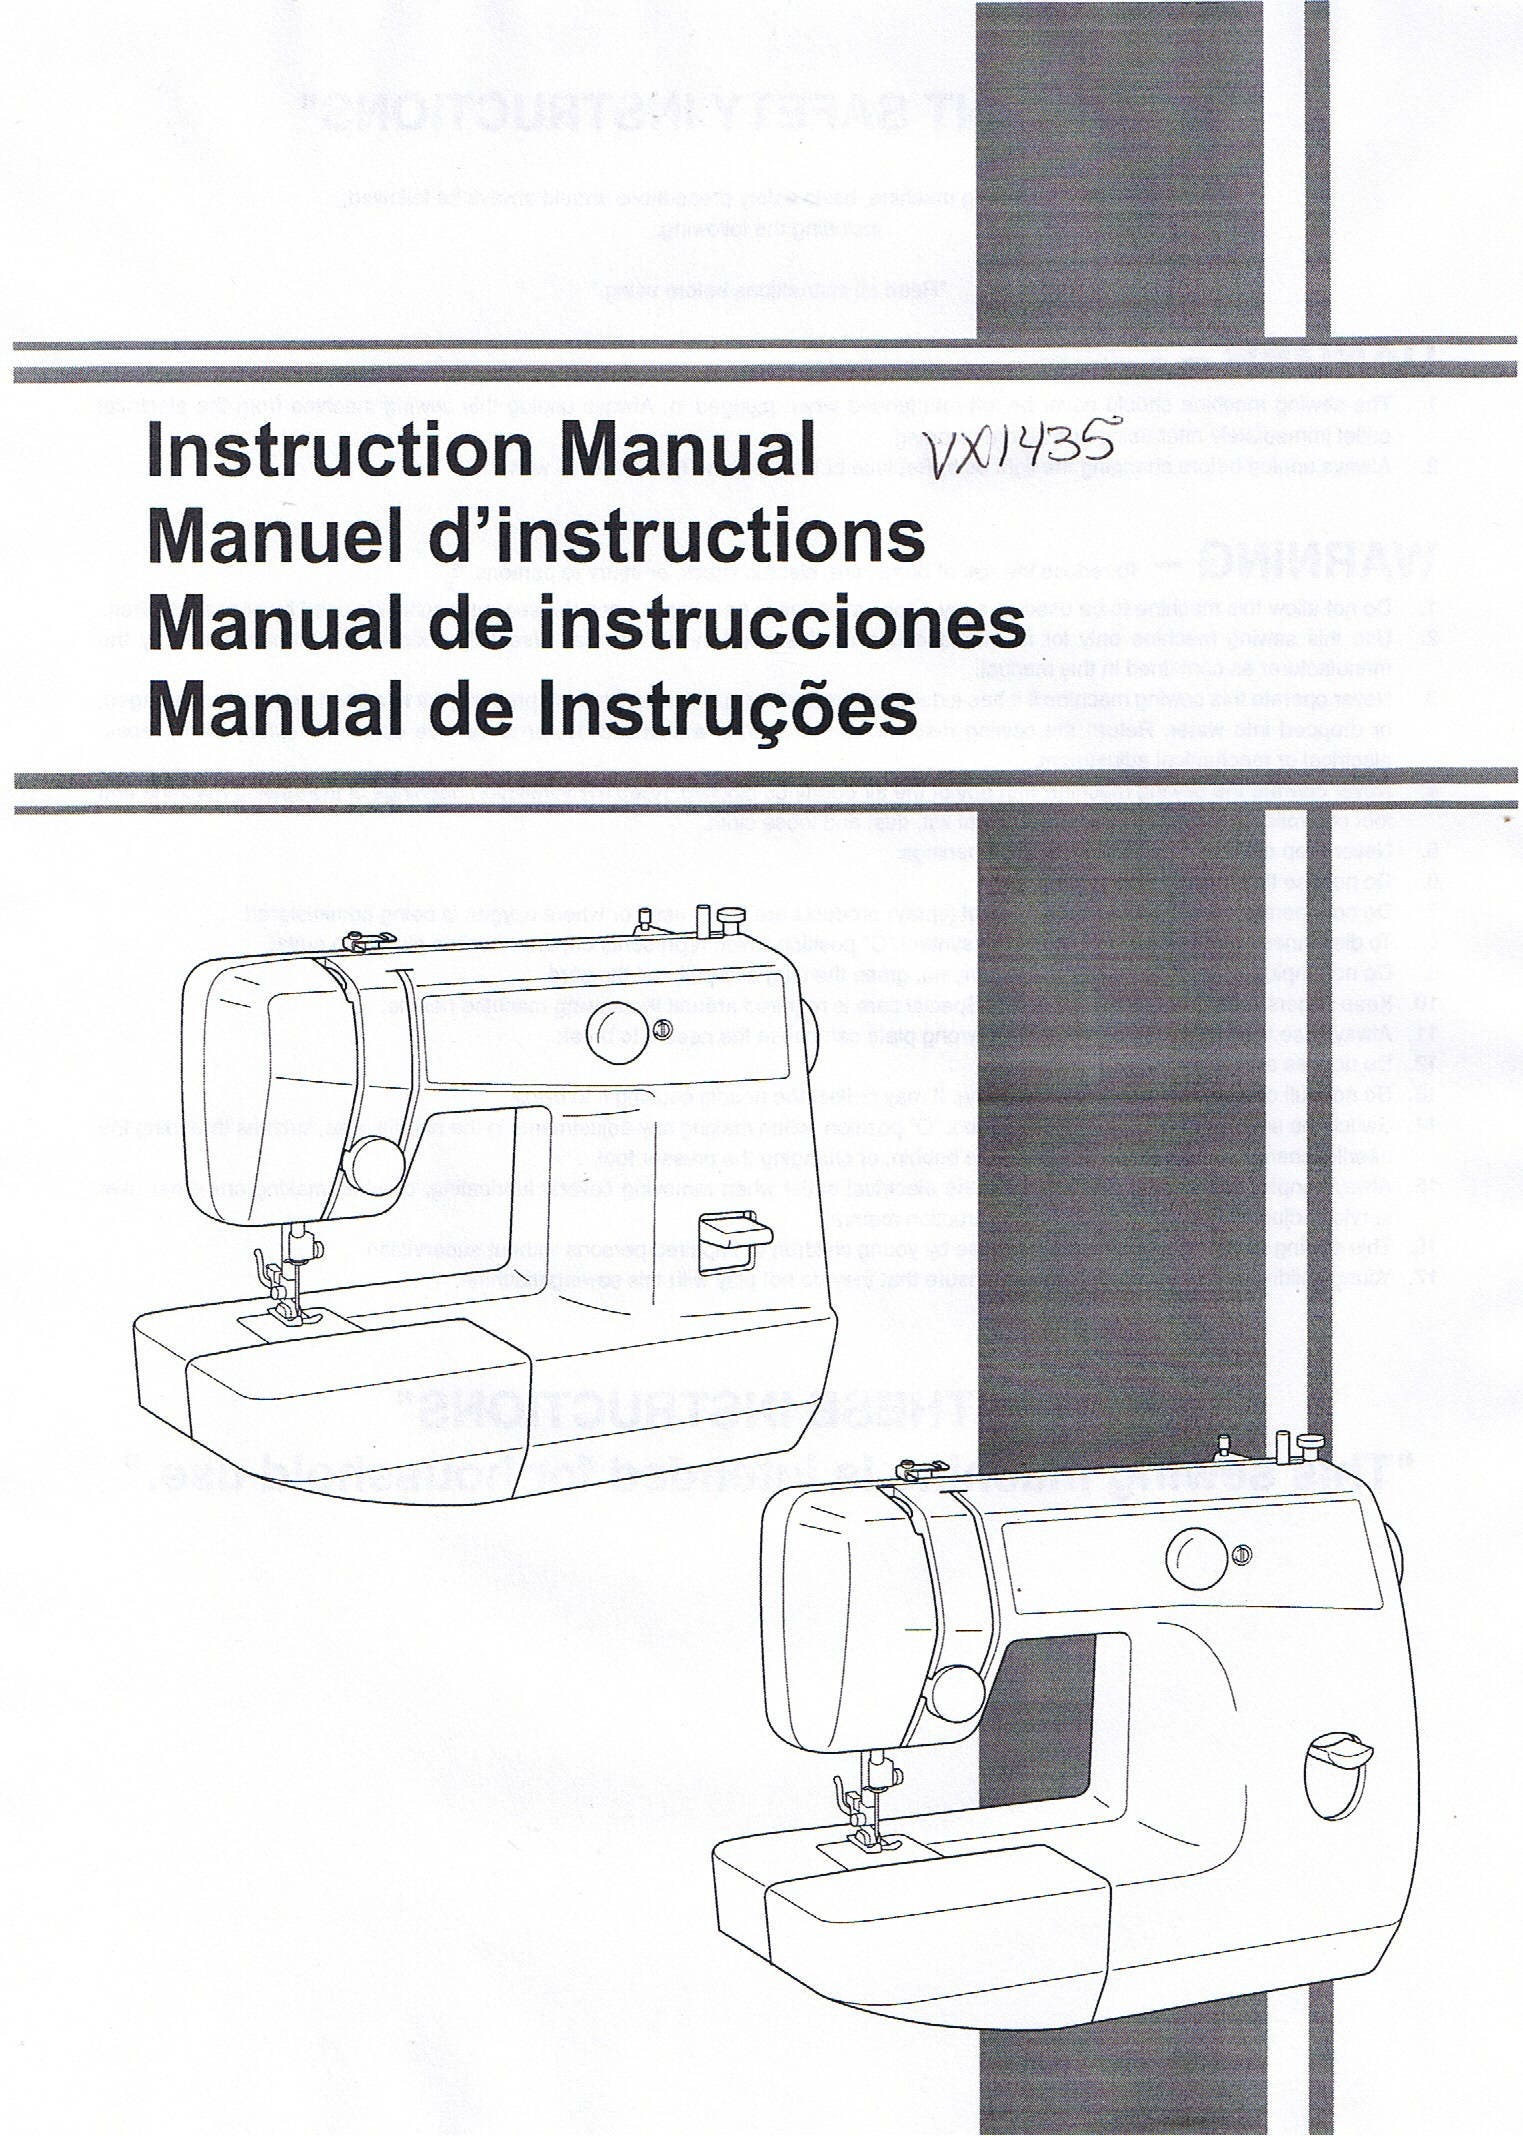 Brother Ls1520 Ls2125i Vx1435 Sewing Machine Operation Etsy Wiring Diagram Operating Users Guide Owners Instruction Manual Book